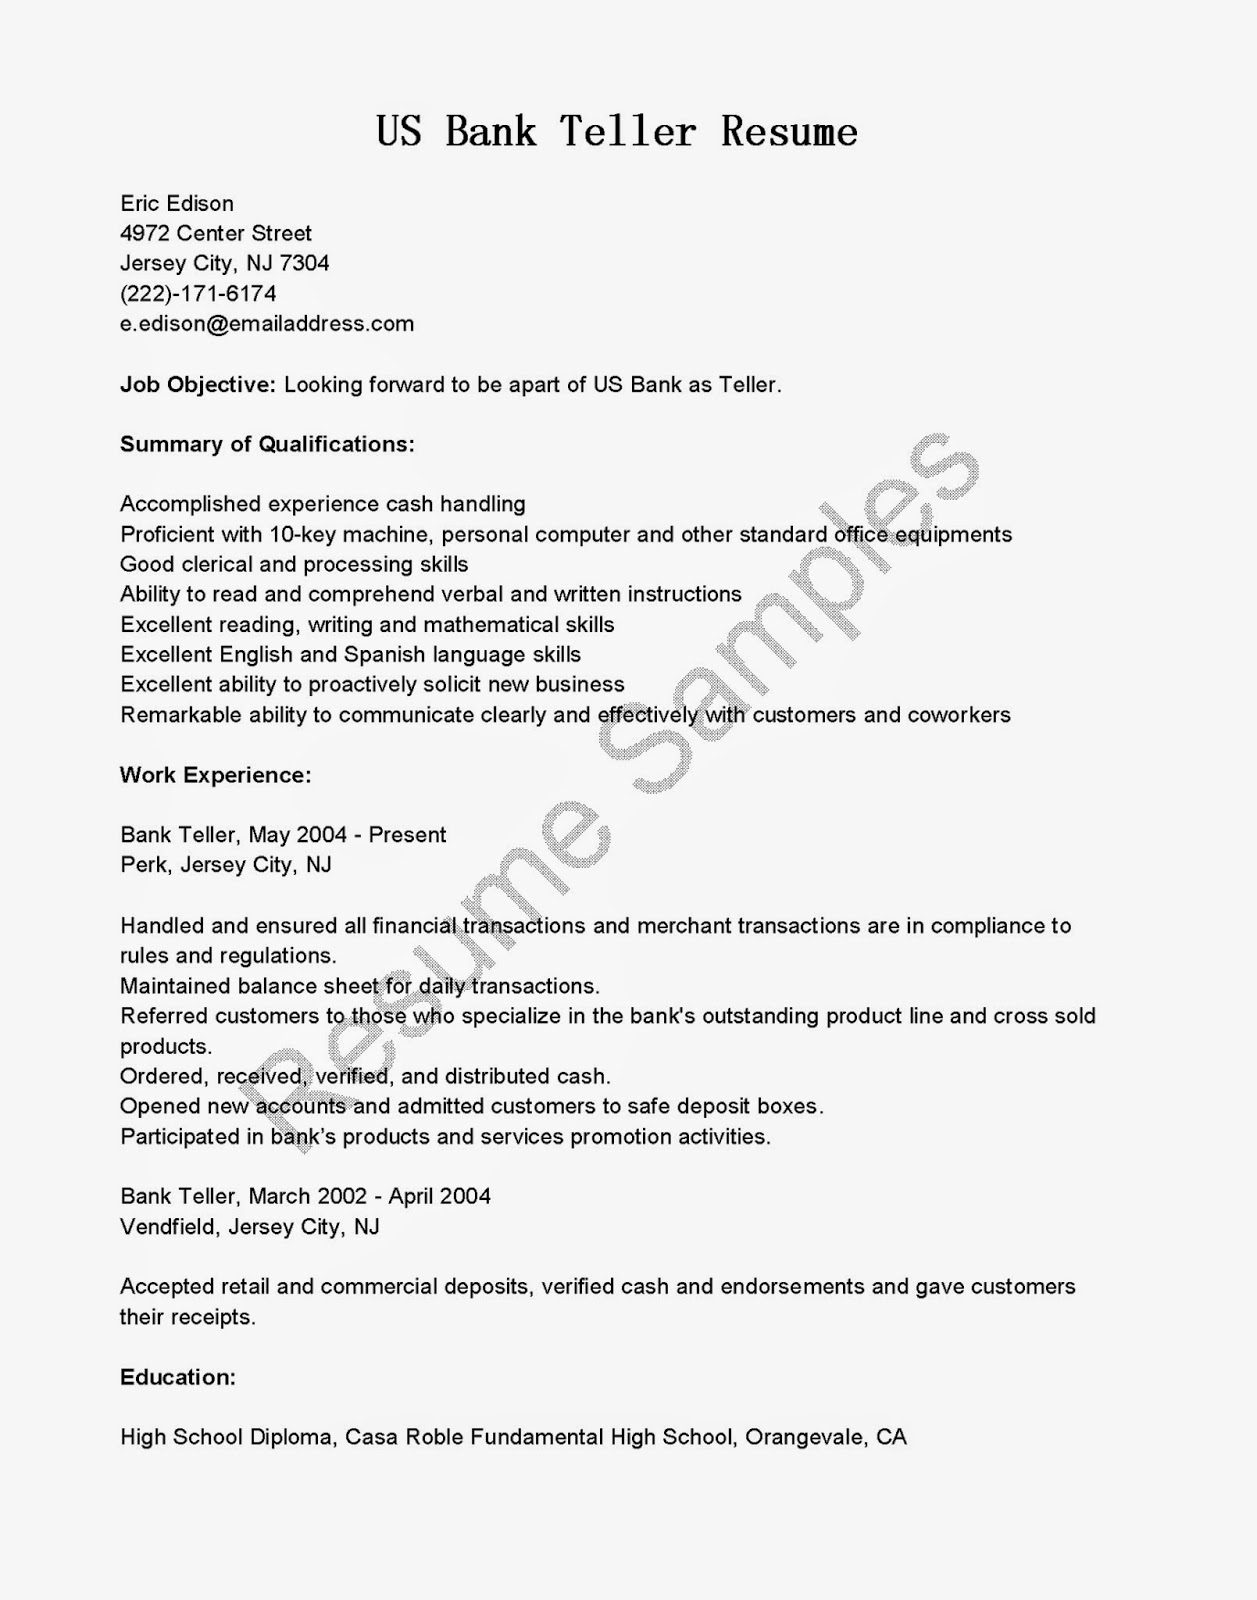 Resume example for bank teller